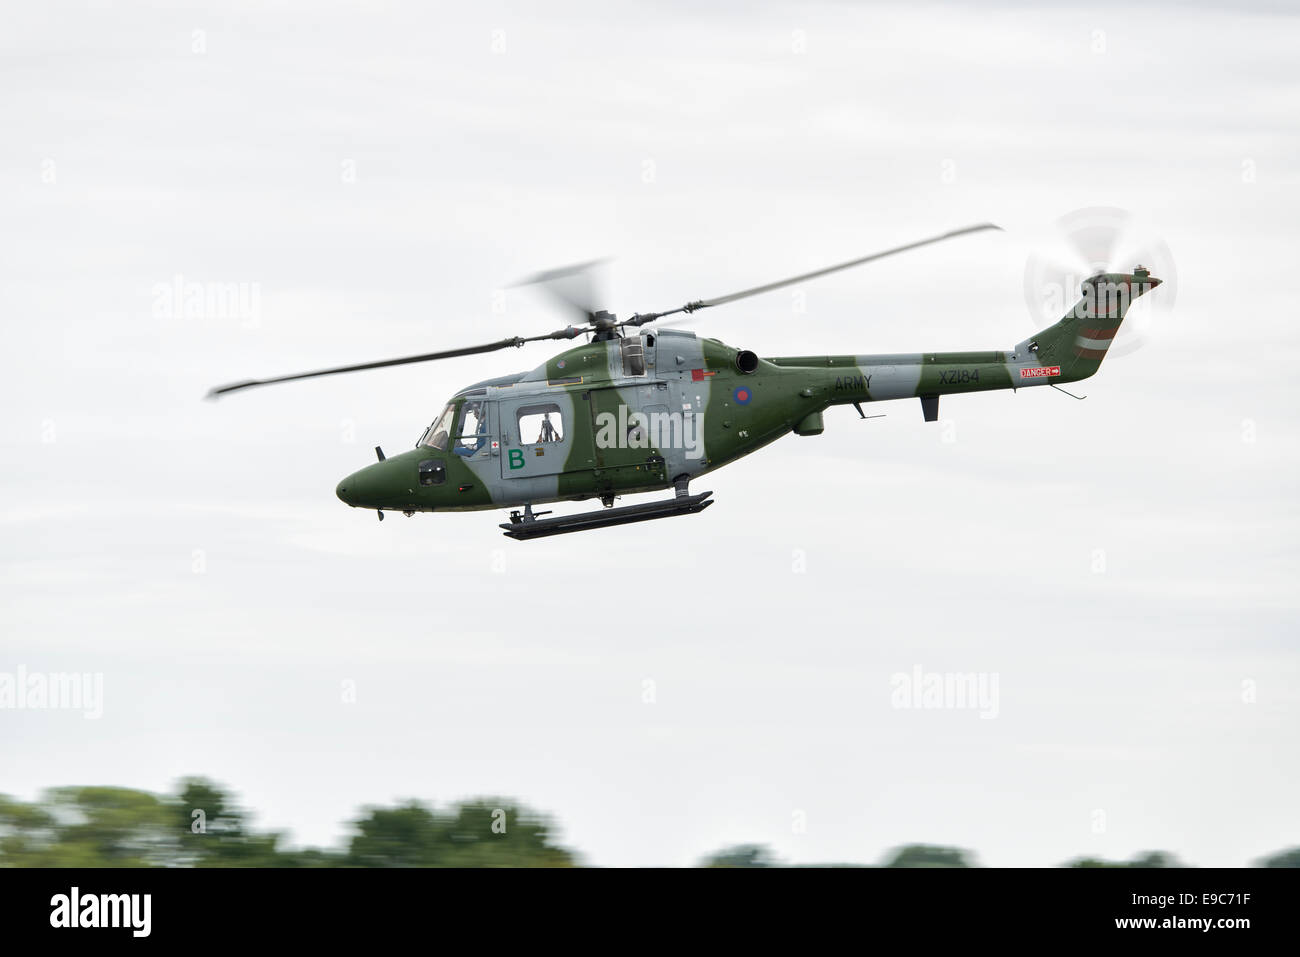 British Army Westland Lynx helicopter XZ184 displays at the Royal International Air Tattoo at RAF Fairford in Gloucestershire - Stock Image